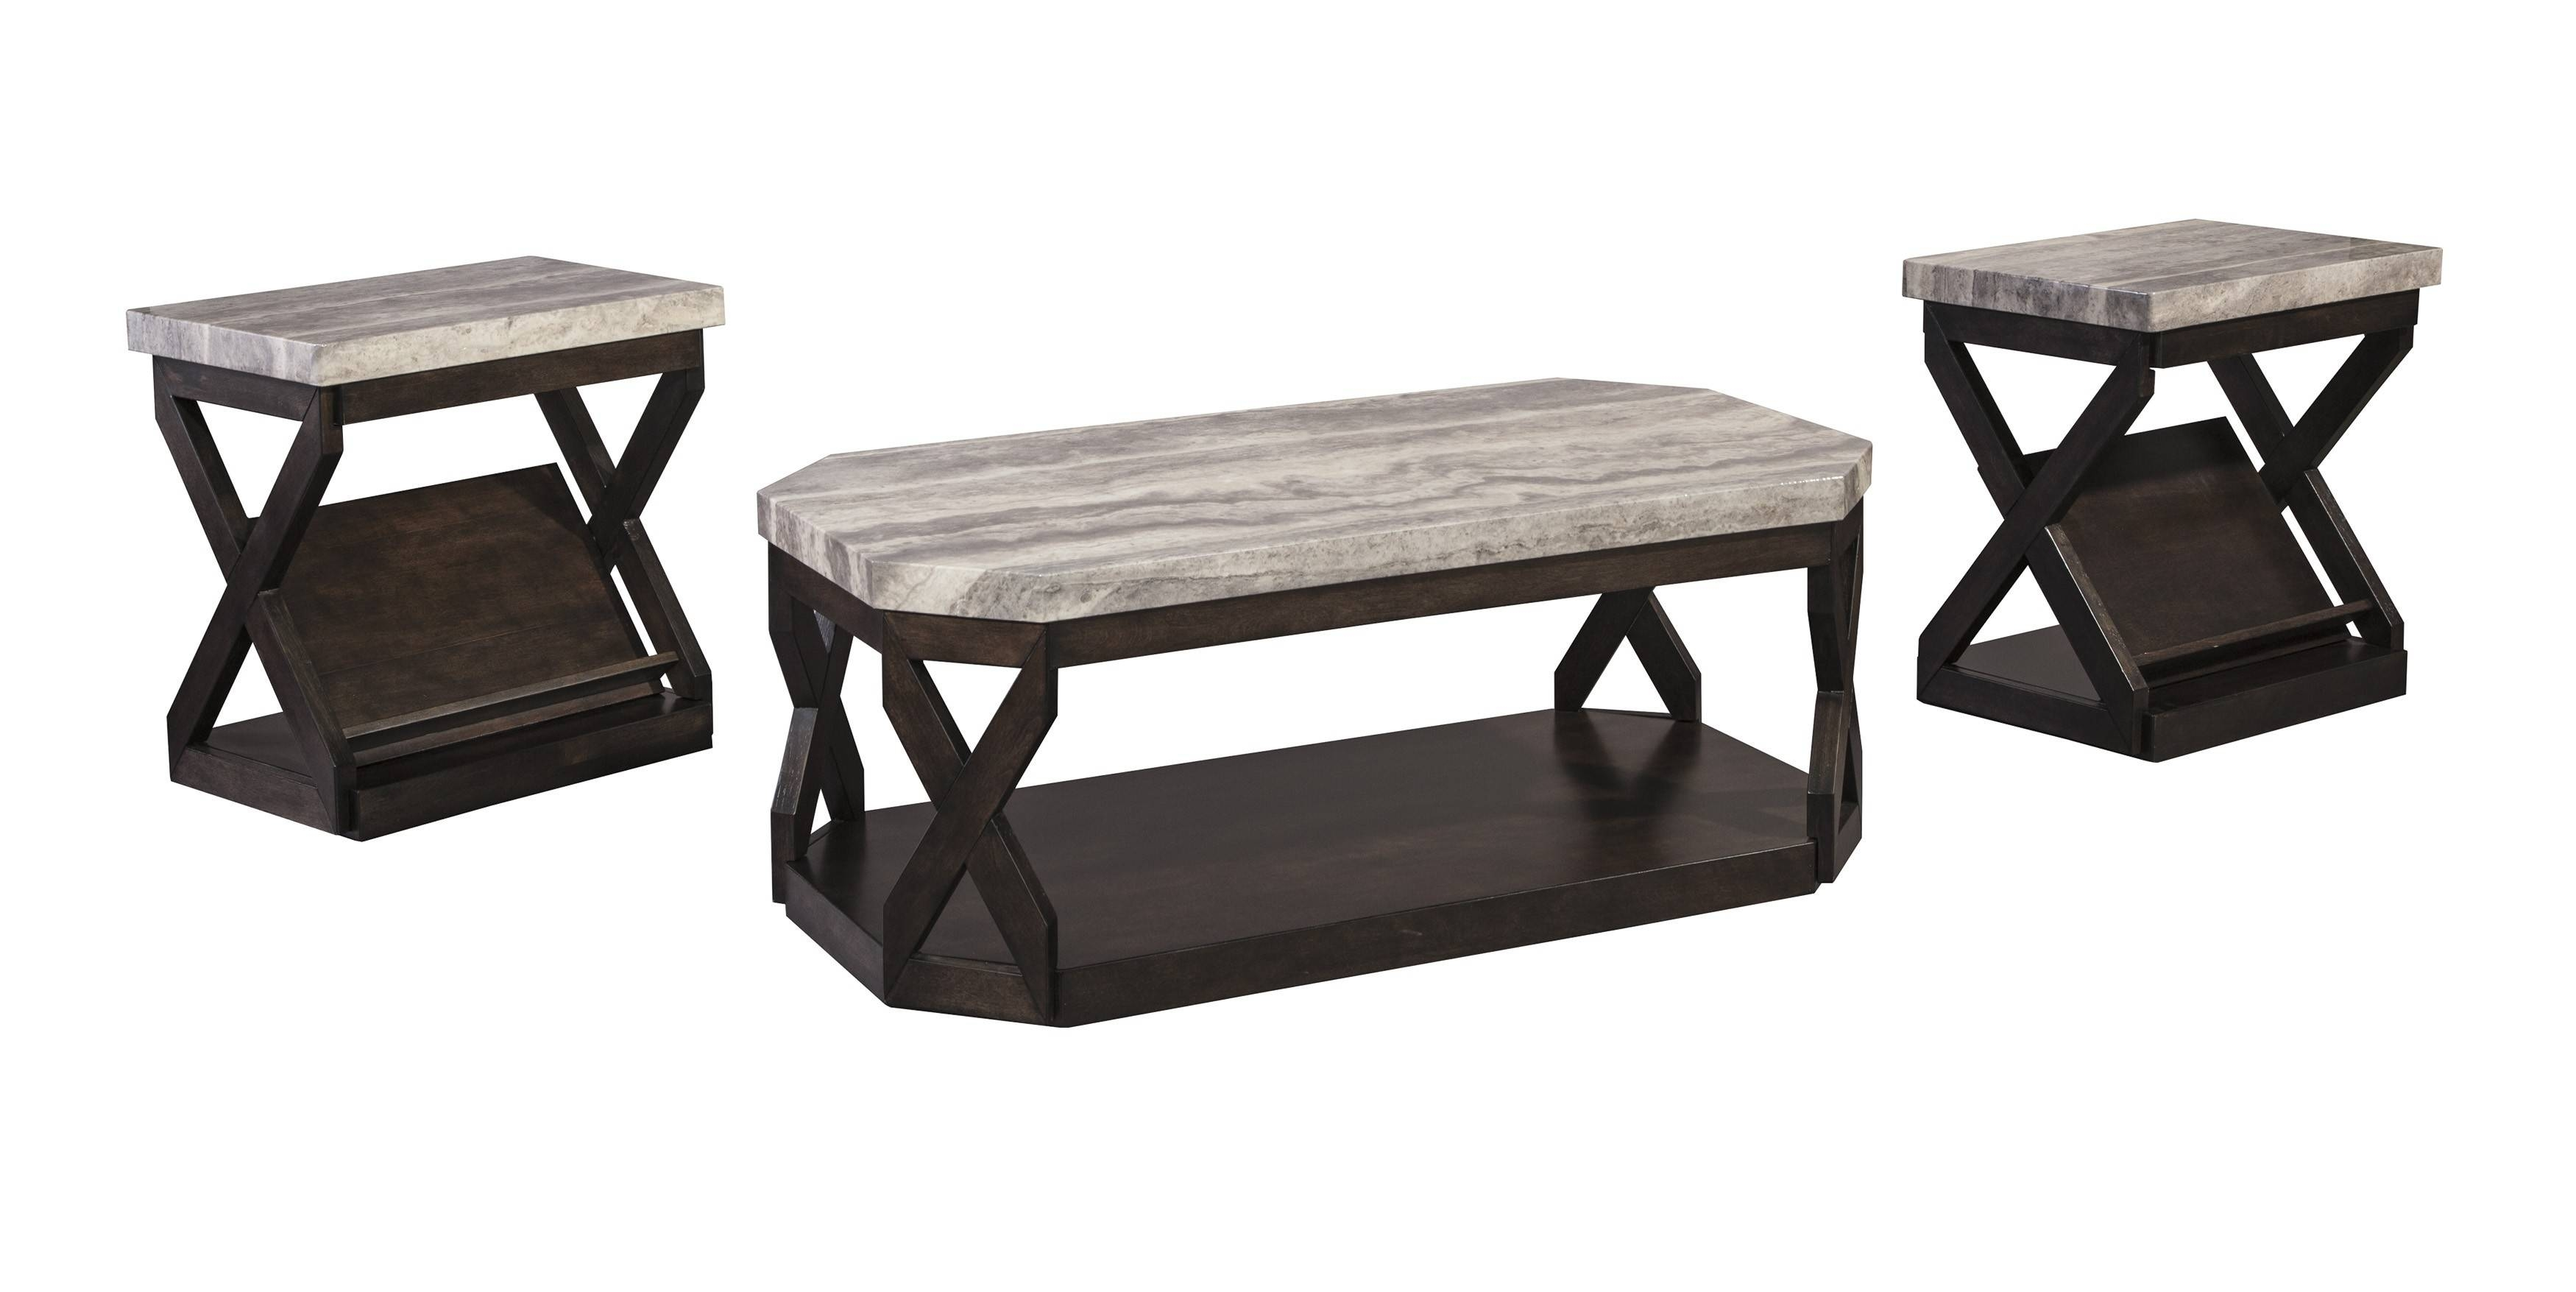 Buy Ashley Furniture Radilyn 3 Piece Table Set intended for 2 Piece Coffee Table Sets (Image 7 of 30)